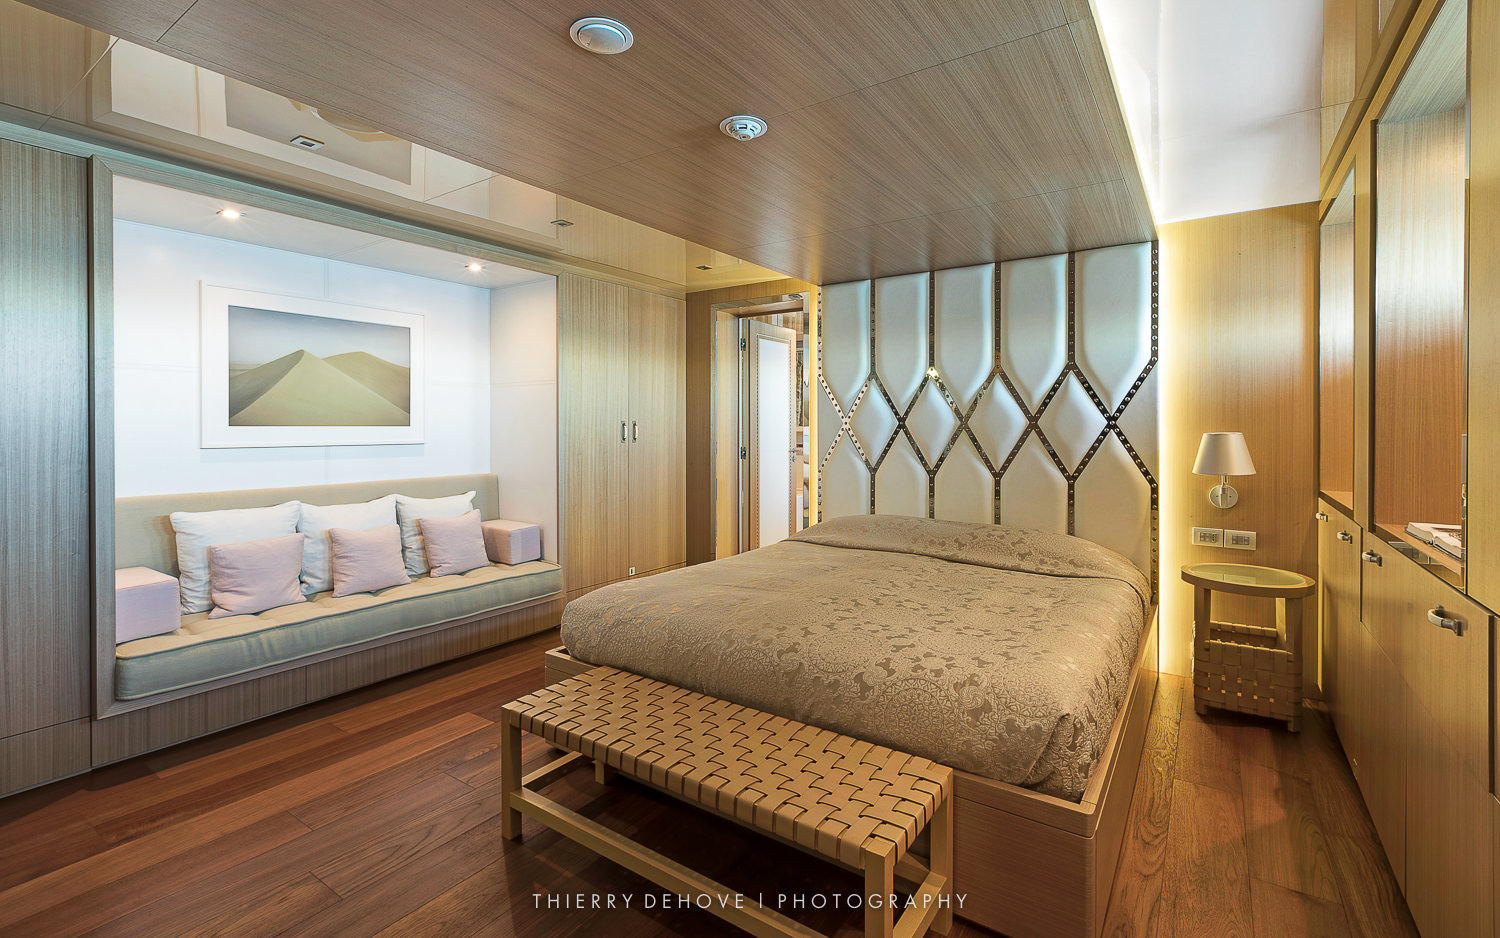 Double Cabin on Motor Yacht Vicky 194 by Baglietto, Italy